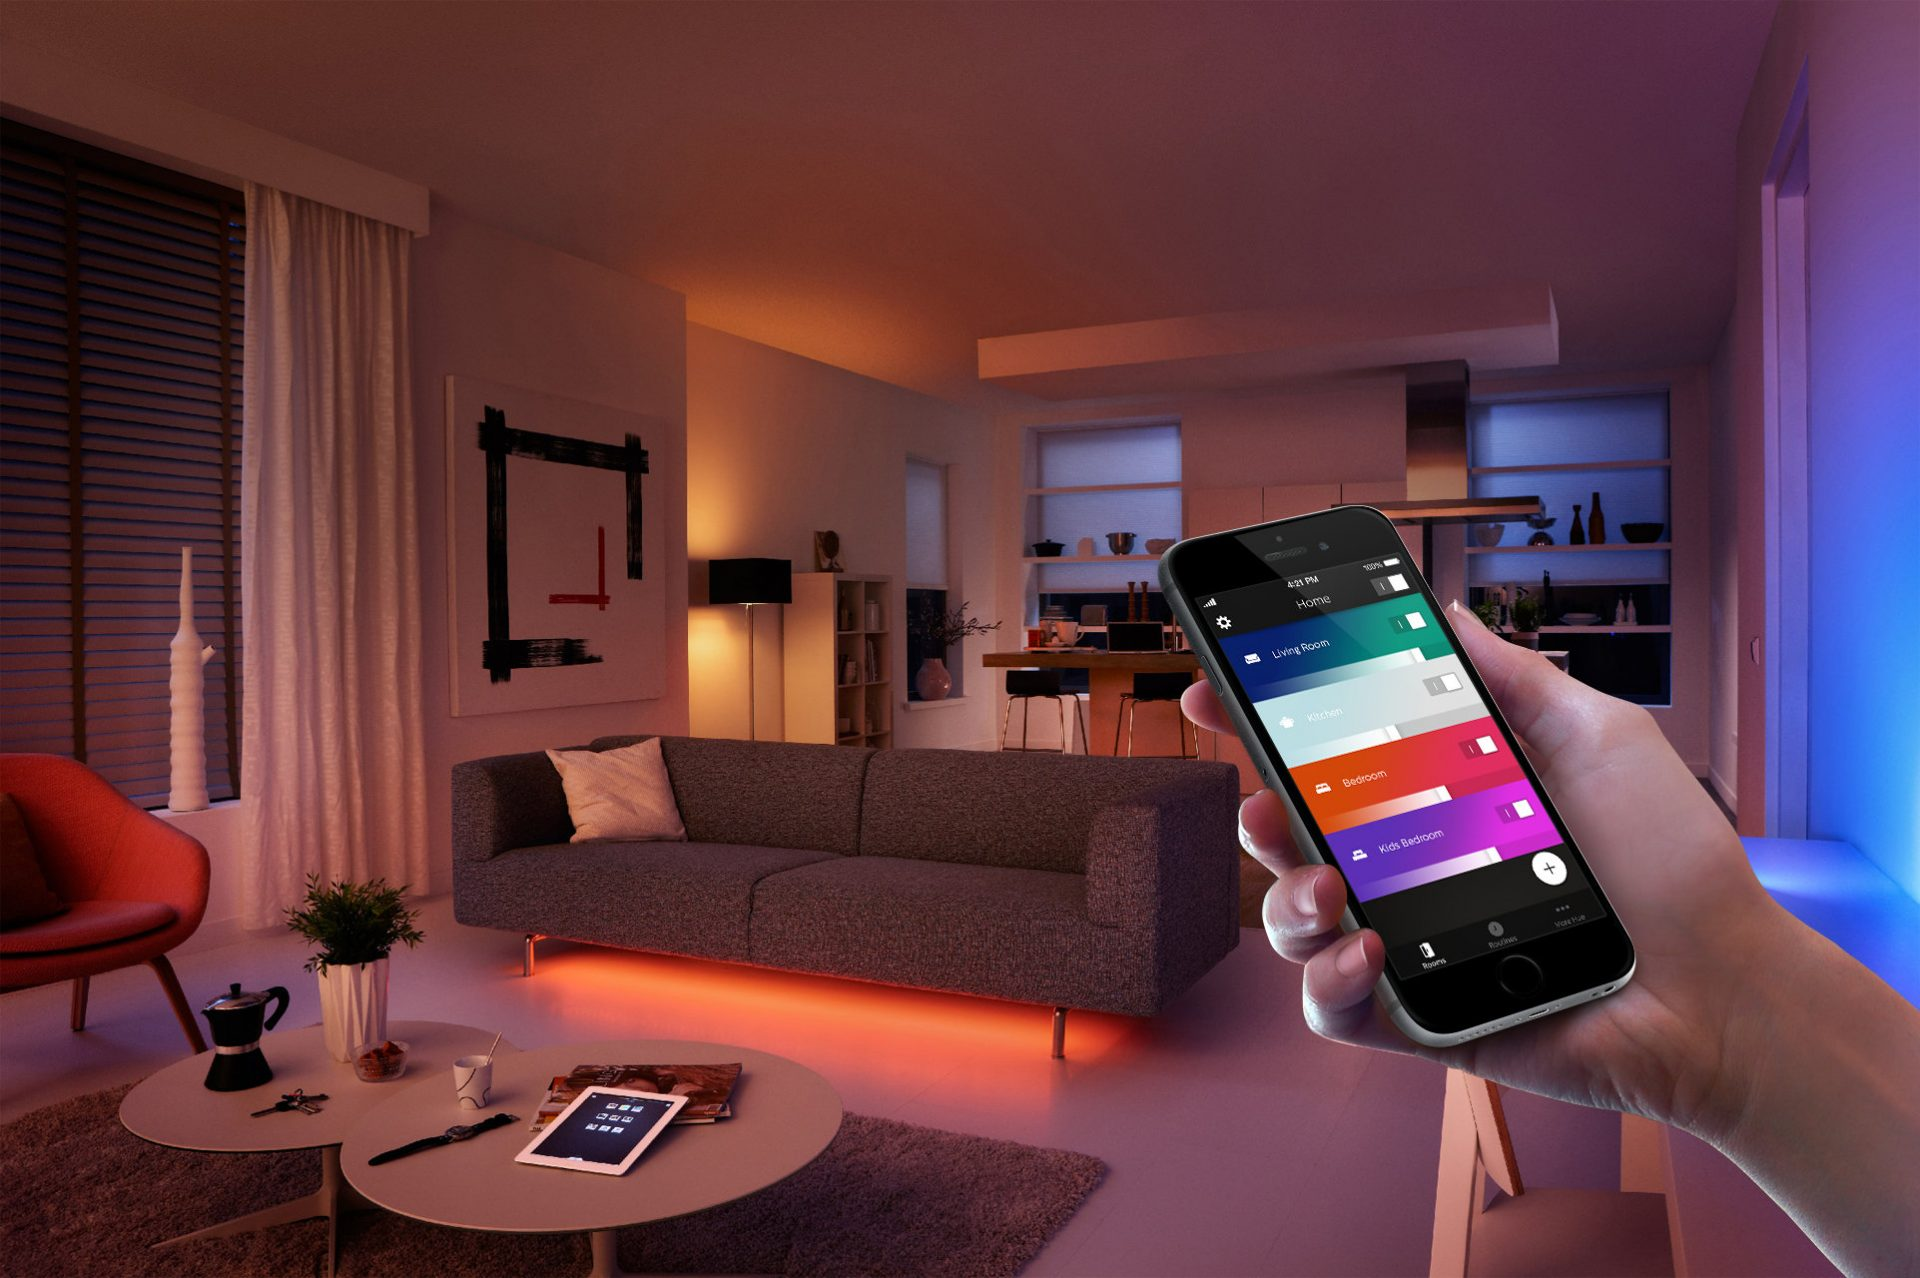 Using Phillips Hue Light system - compatible with Alexa and Google Home